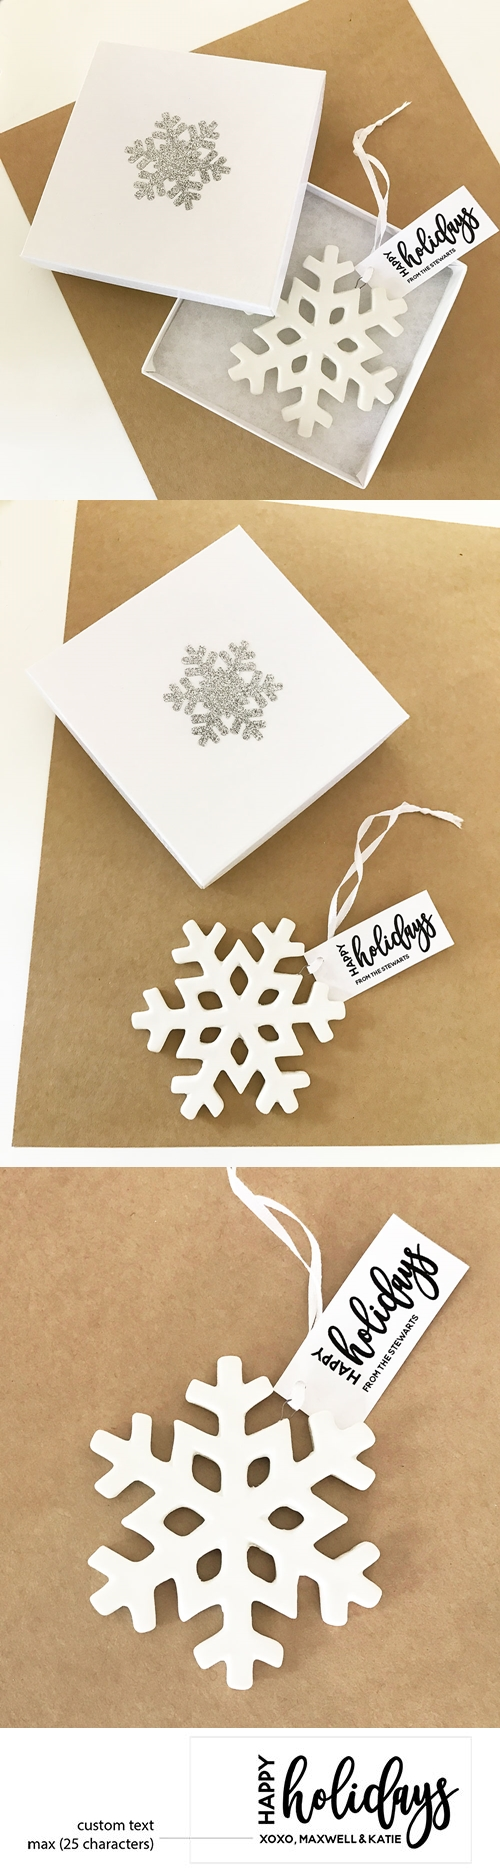 Event Blossom Personalized Happy Holidays Snowflake Ornament